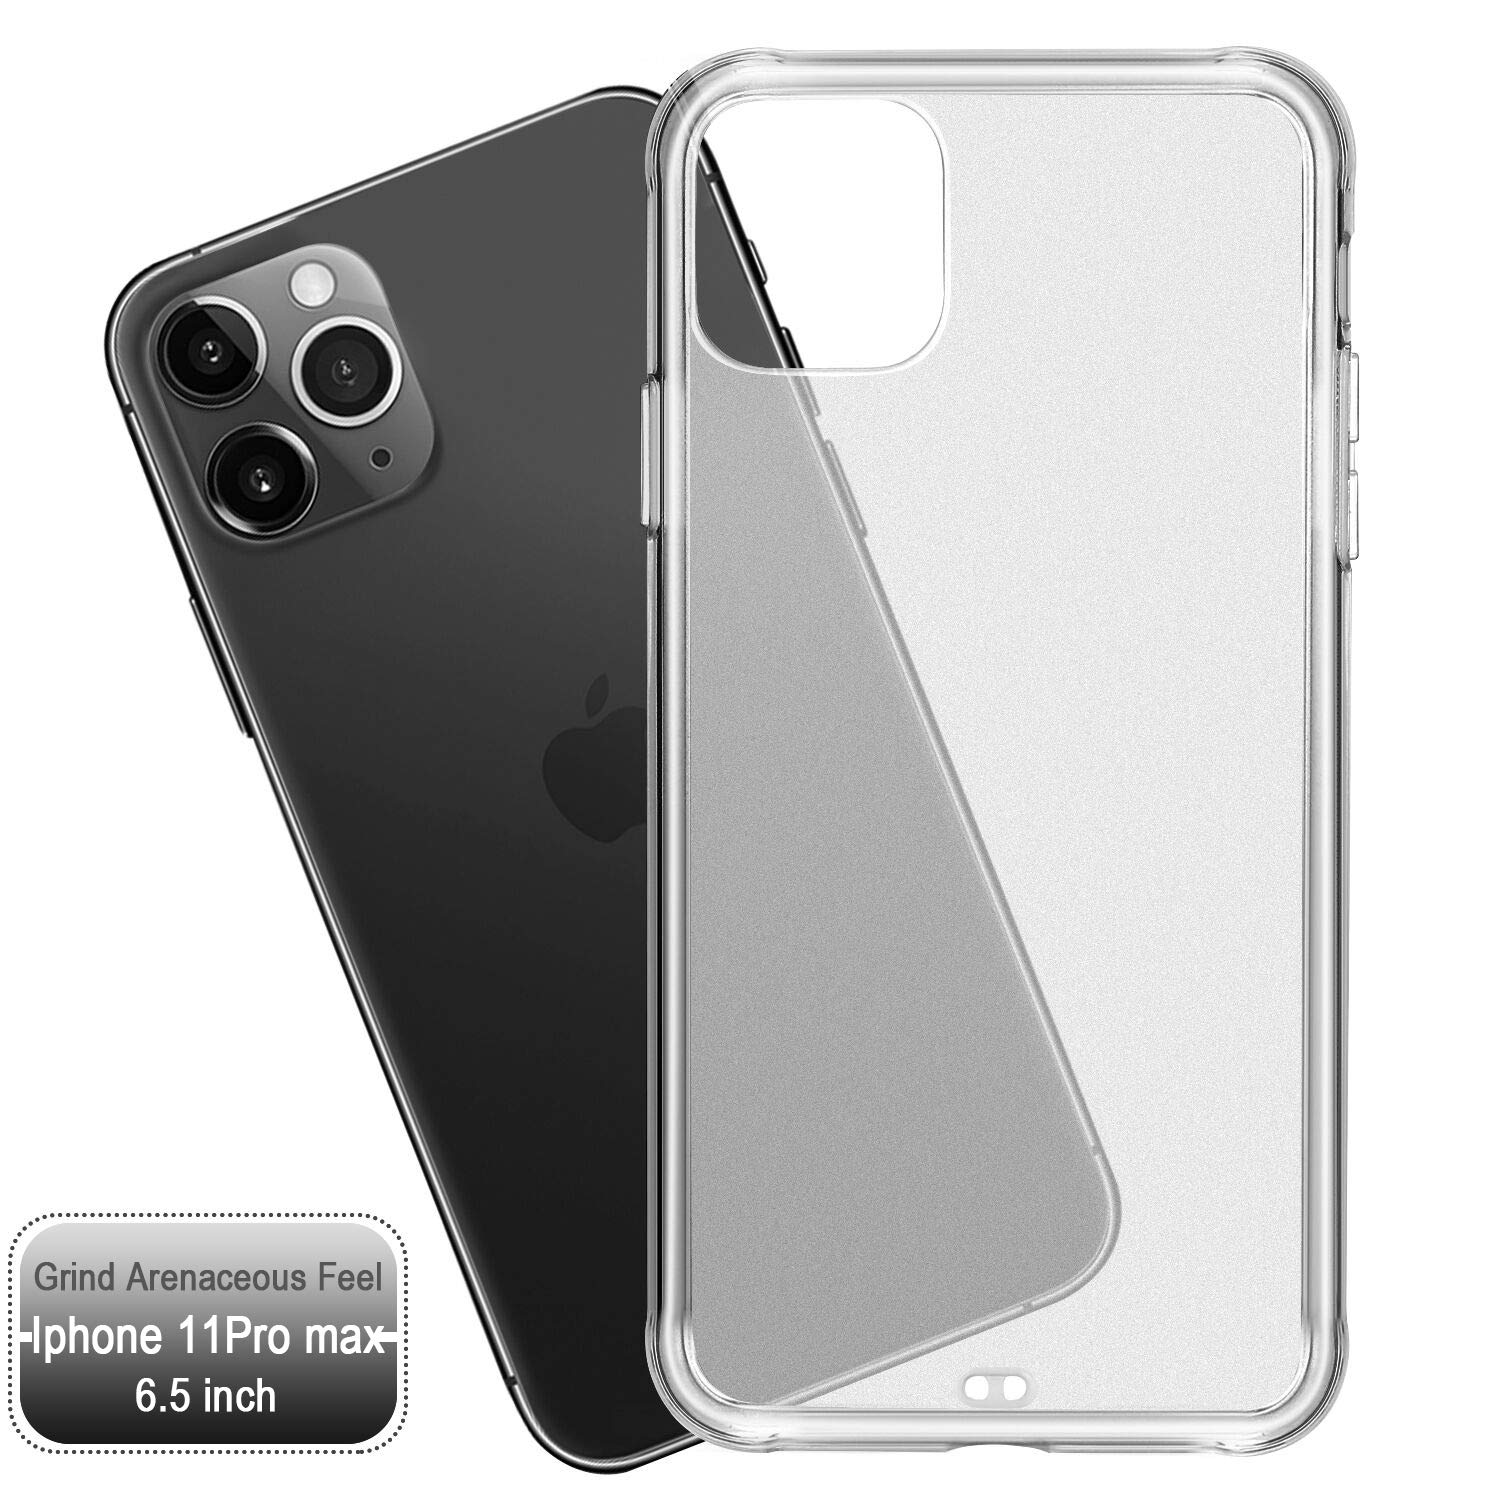 ORIbox Case for iPhone 11 pro max, Translucent Matte case with Soft Edges, Shockproof and Anti-Drop Protection Case Designed for iPhone 11 pro max, Clear